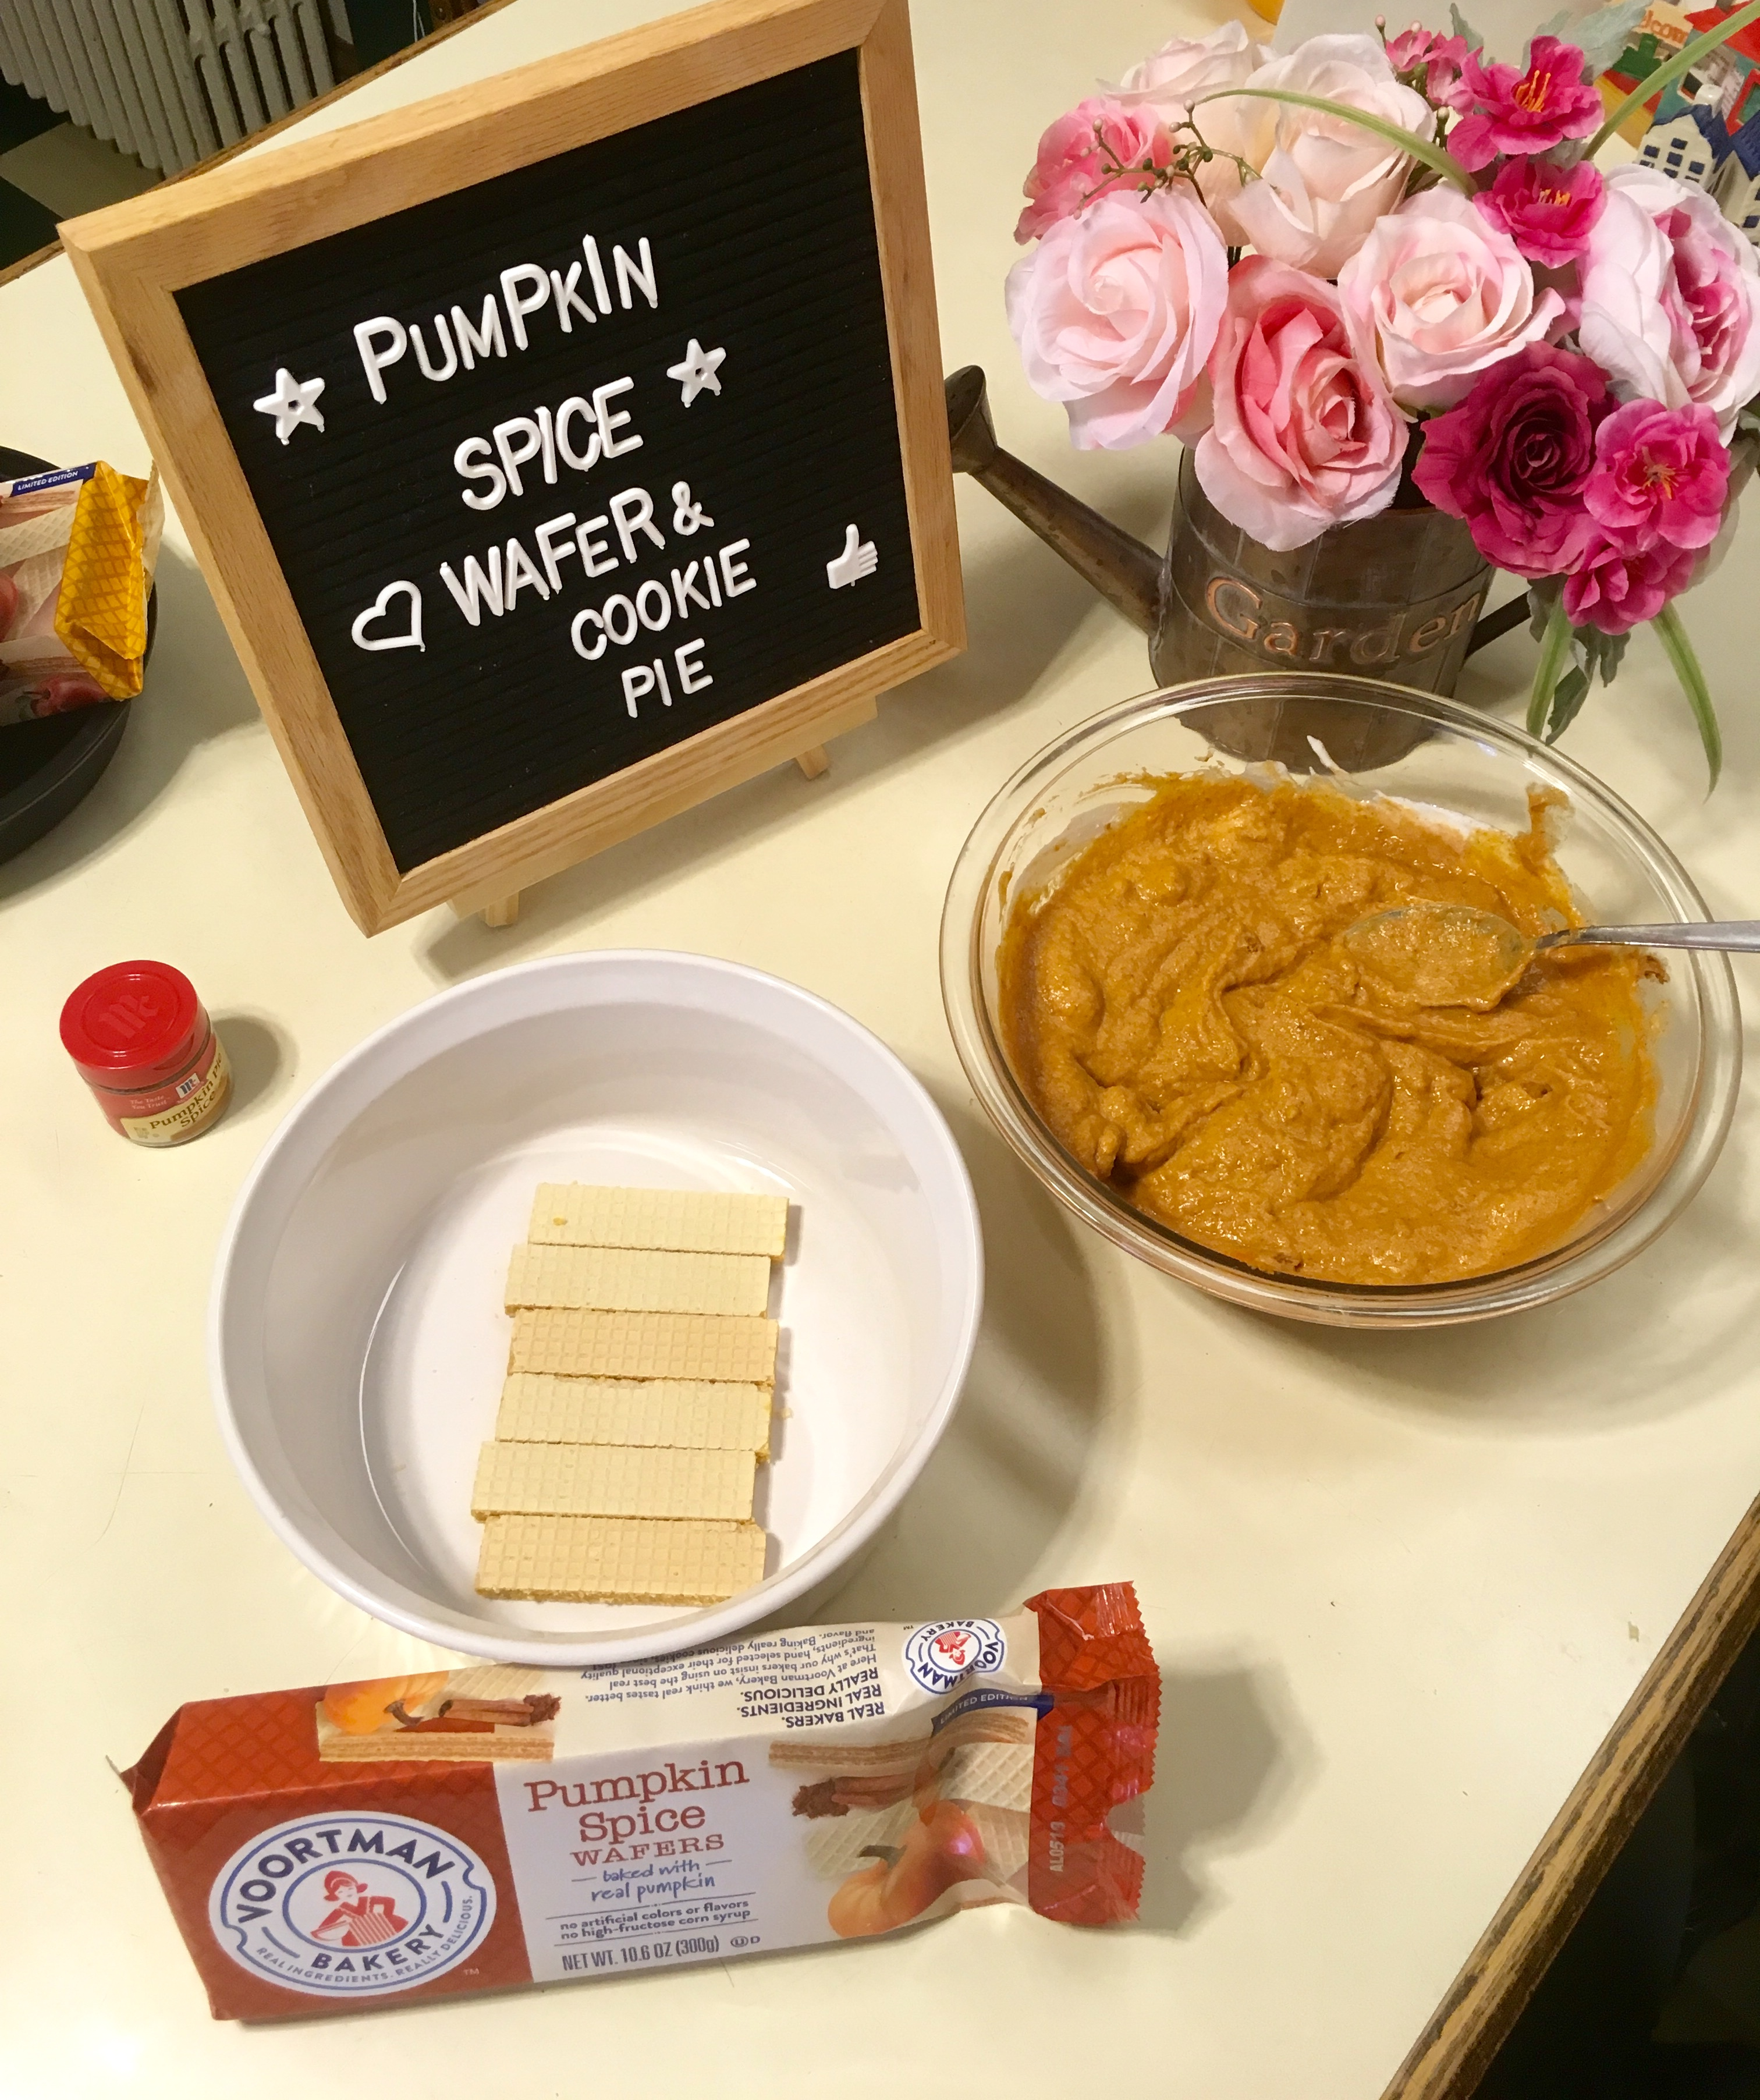 No Bake Pumpkin Spice Wafer and Cookie Pie